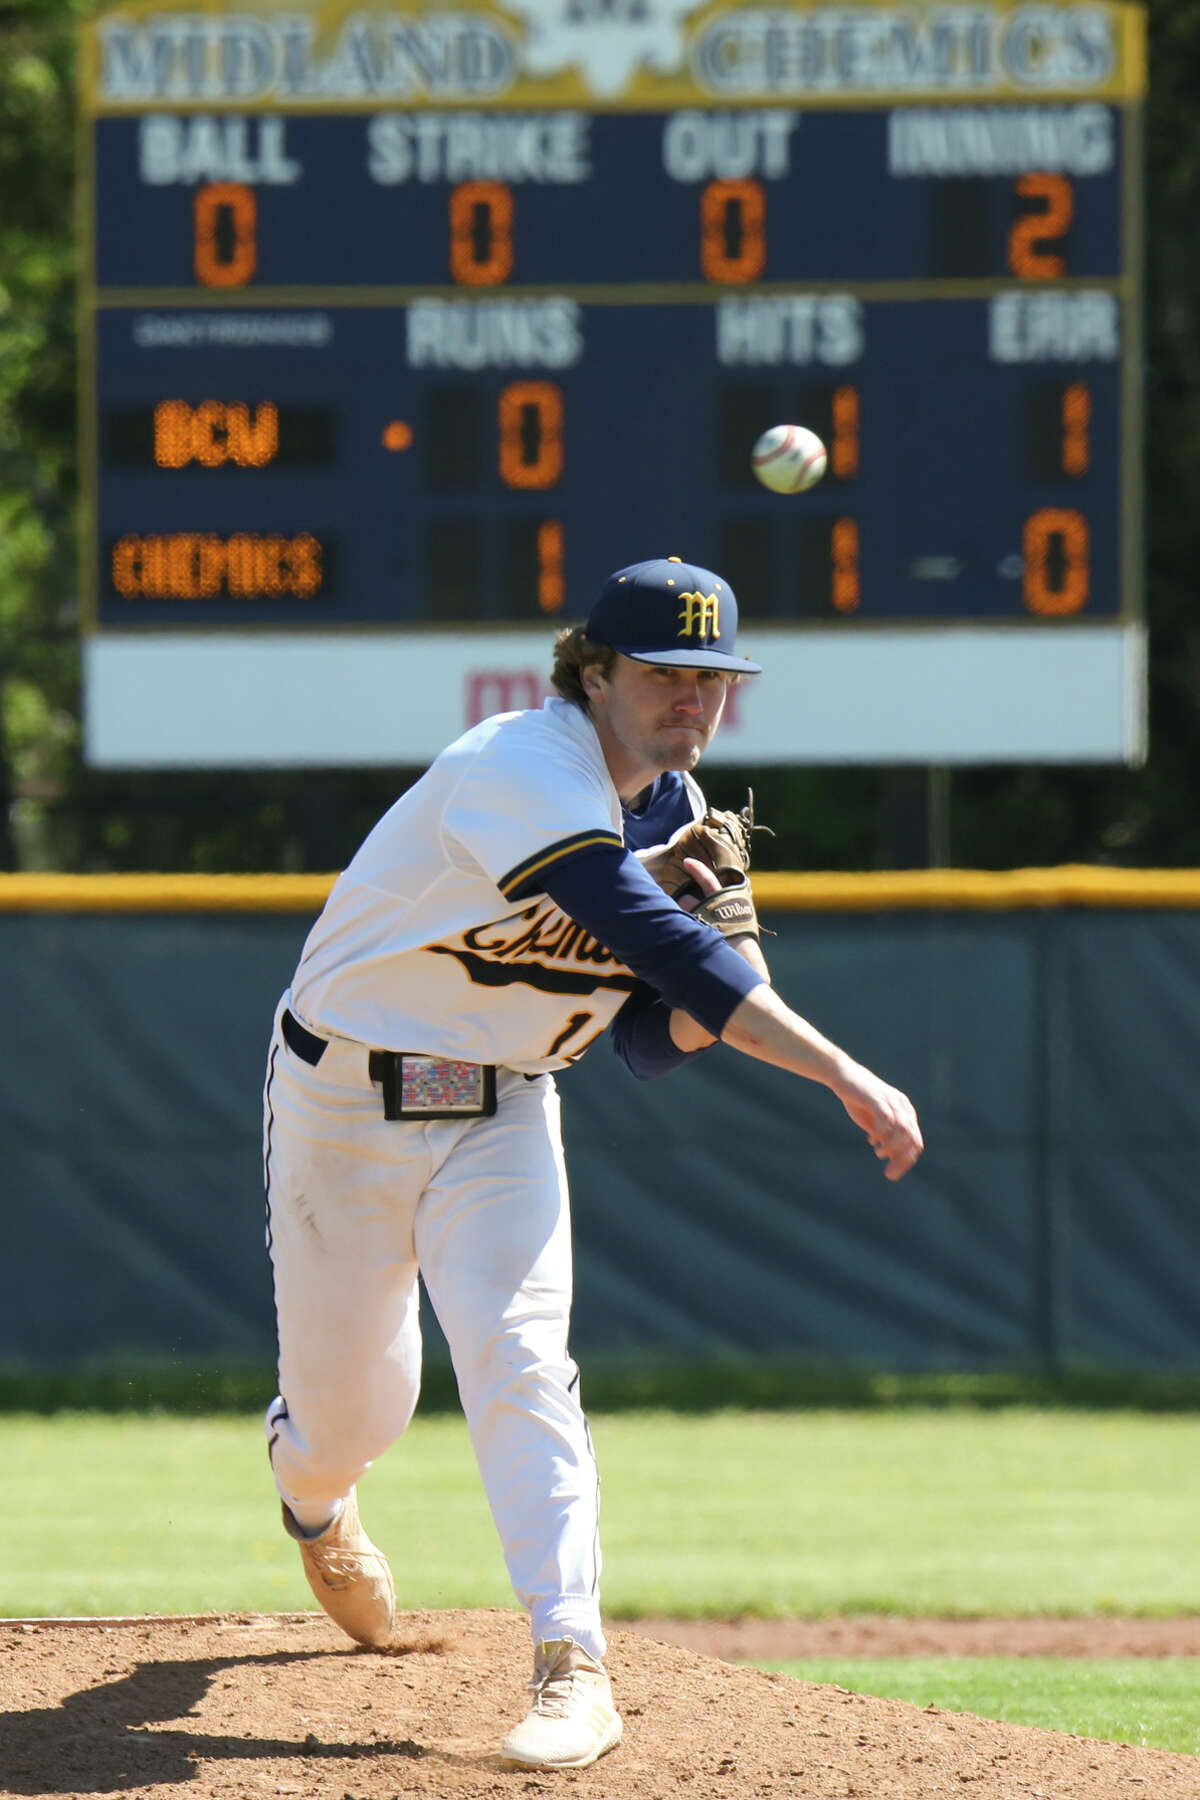 Midland High's Al Money pitches the ball during a game against Bay City Western Saturday, May 8, 2021 at Midland High School. (Doug Julian/for the Daily News)